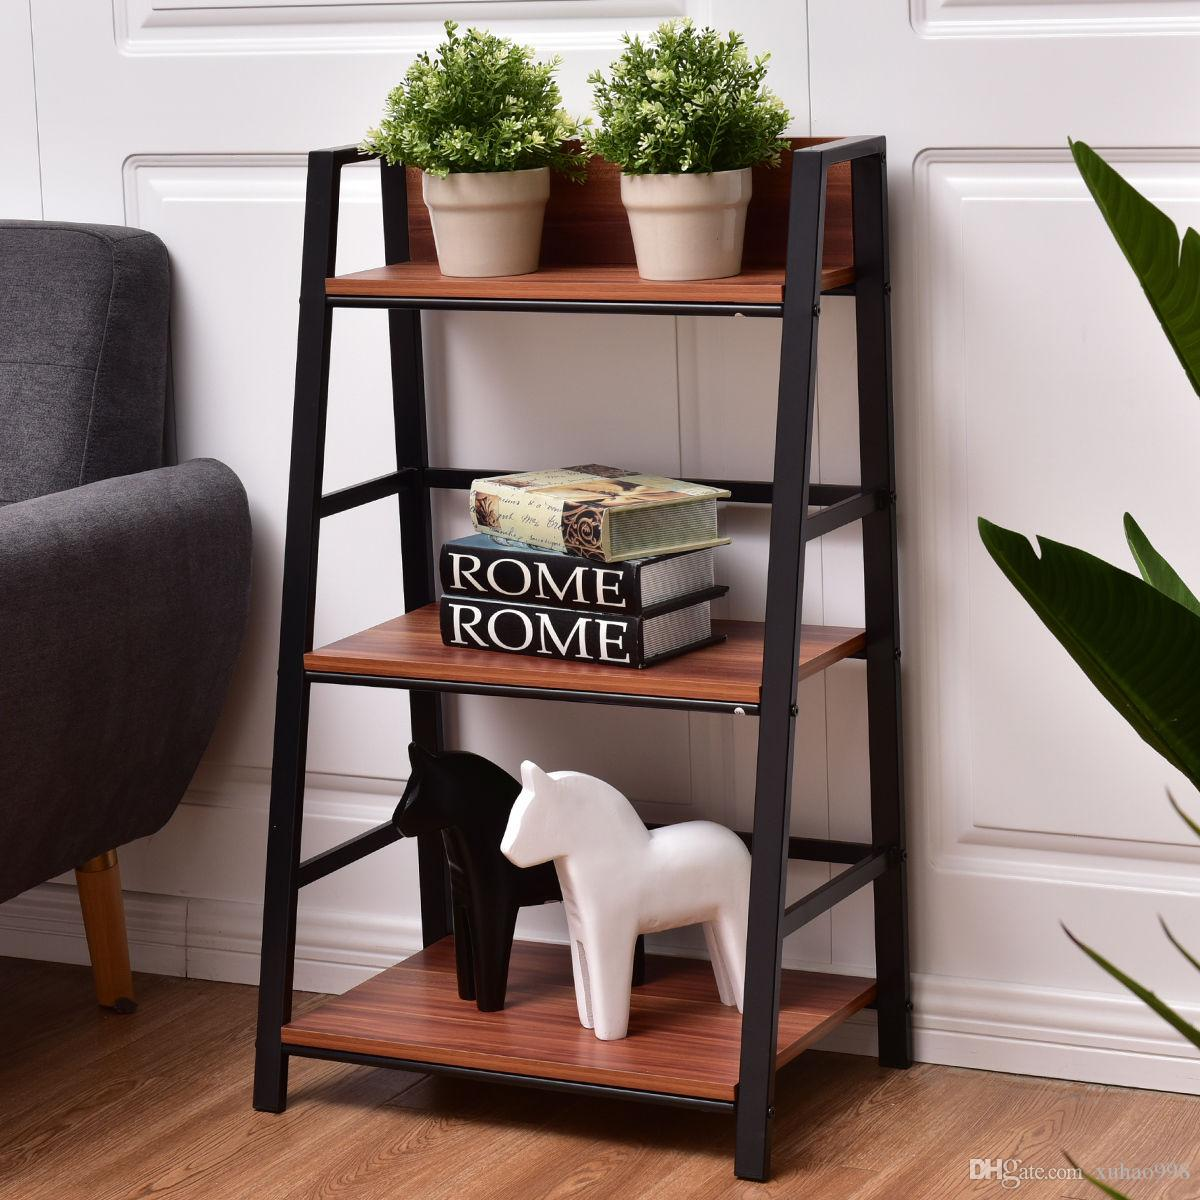 3 Tier Ladder Storage Book Shelf Wall Bookcase Bundle Modern Floor Decor